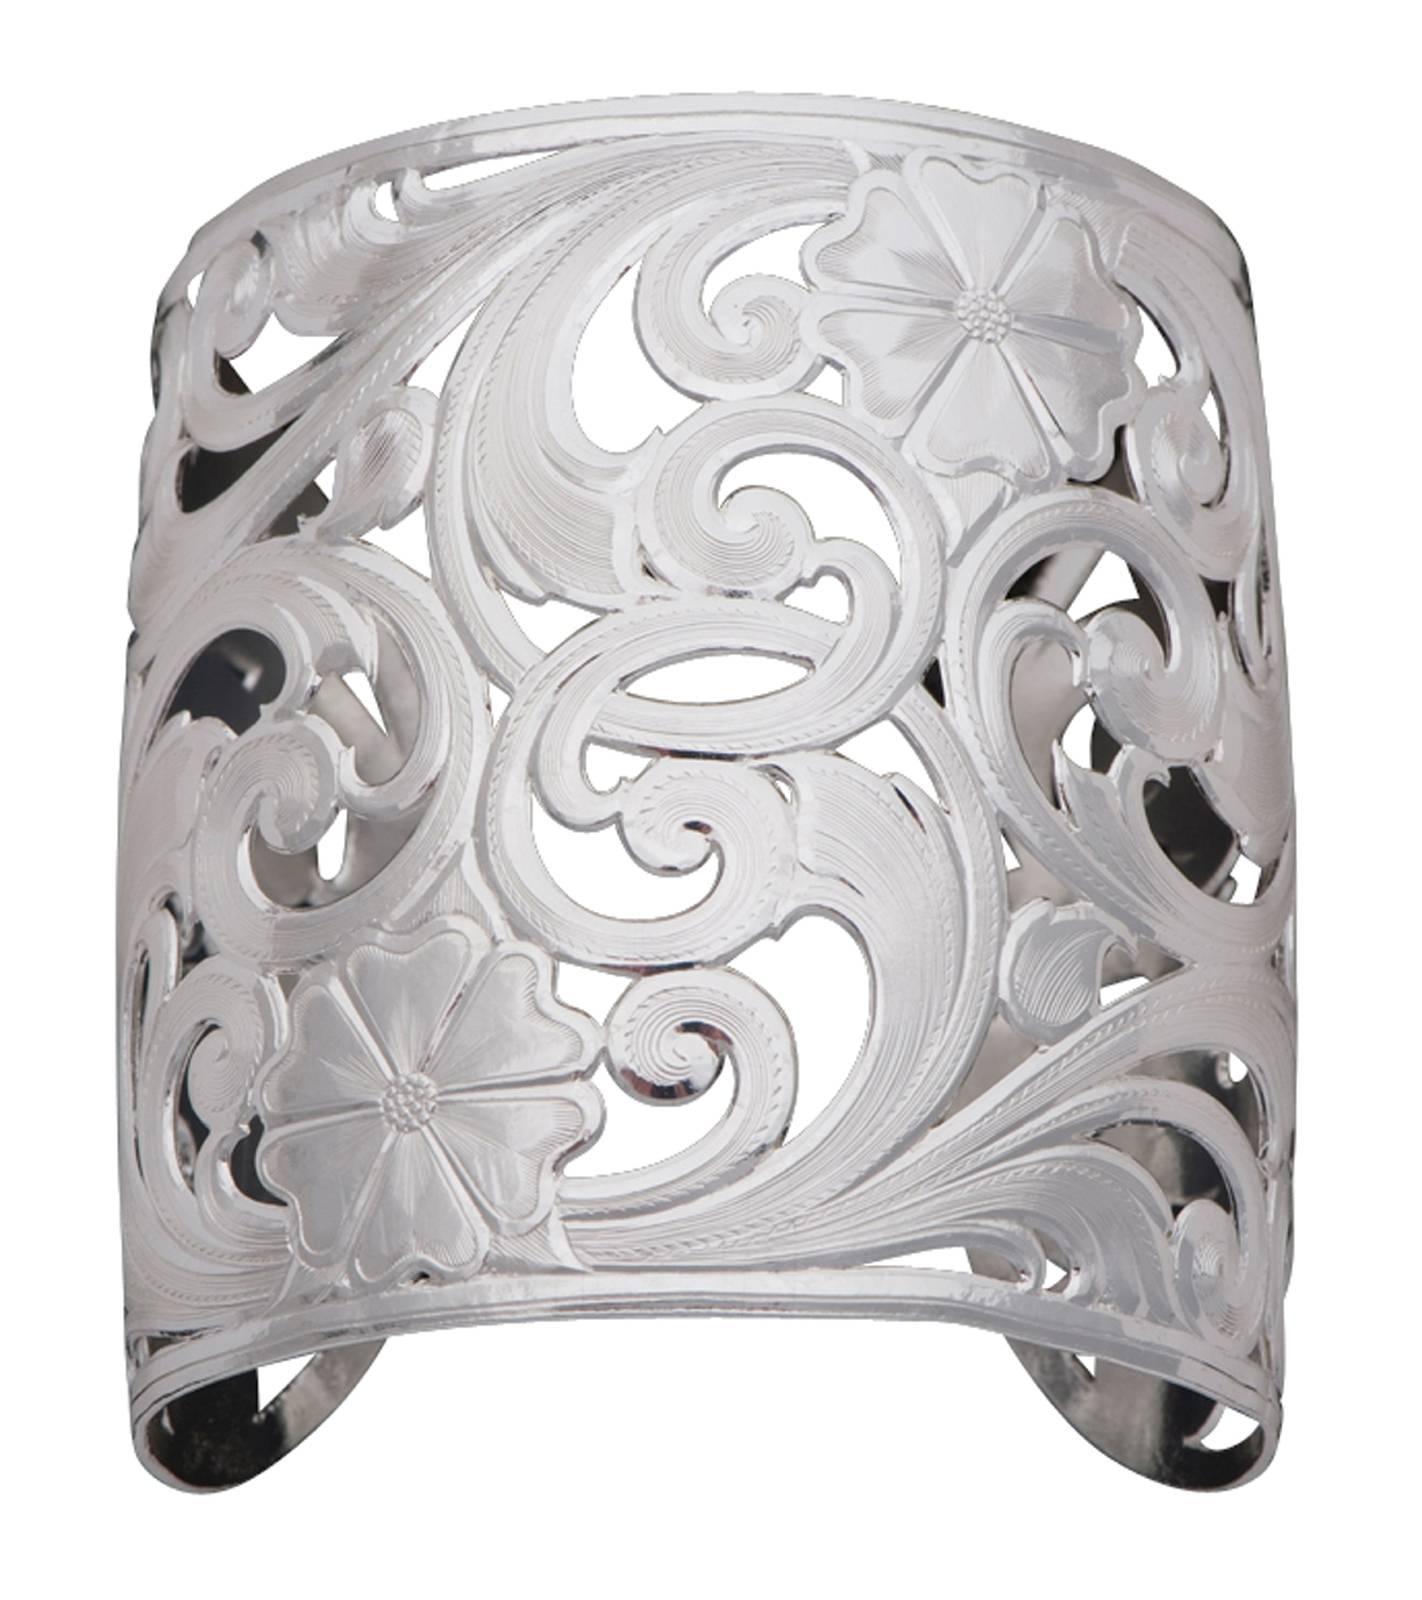 Montana Silversmiths Silver Spring Filigree Flowers and Vines Wide Cuff Bracelet